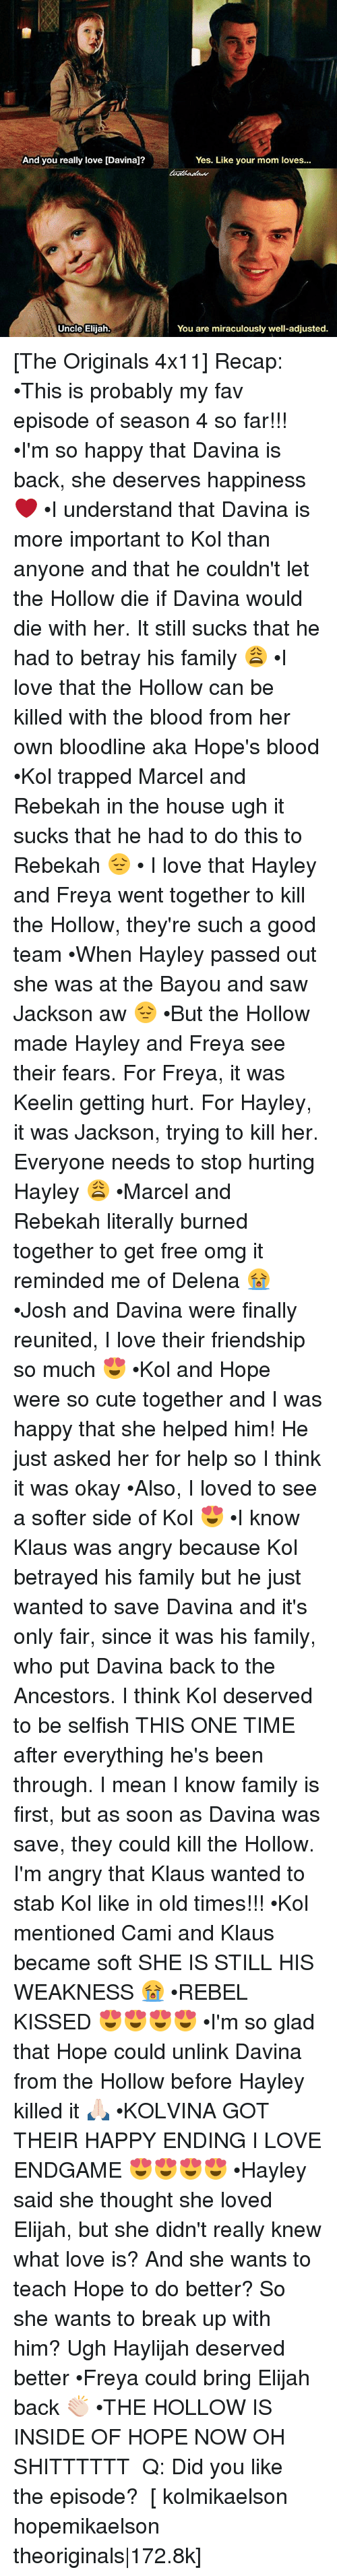 Cute, Family, and Love: And you really love [Davinaj?  Uncle Elijah.  Yes. Like your mom loves...  You are miraculously well-adjusted. [The Originals 4x11] Recap: •This is probably my fav episode of season 4 so far!!! •I'm so happy that Davina is back, she deserves happiness ❤️ •I understand that Davina is more important to Kol than anyone and that he couldn't let the Hollow die if Davina would die with her. It still sucks that he had to betray his family 😩 •I love that the Hollow can be killed with the blood from her own bloodline aka Hope's blood •Kol trapped Marcel and Rebekah in the house ugh it sucks that he had to do this to Rebekah 😔 • I love that Hayley and Freya went together to kill the Hollow, they're such a good team •When Hayley passed out she was at the Bayou and saw Jackson aw 😔 •But the Hollow made Hayley and Freya see their fears. For Freya, it was Keelin getting hurt. For Hayley, it was Jackson, trying to kill her. Everyone needs to stop hurting Hayley 😩 •Marcel and Rebekah literally burned together to get free omg it reminded me of Delena 😭 •Josh and Davina were finally reunited, I love their friendship so much 😍 •Kol and Hope were so cute together and I was happy that she helped him! He just asked her for help so I think it was okay •Also, I loved to see a softer side of Kol 😍 •I know Klaus was angry because Kol betrayed his family but he just wanted to save Davina and it's only fair, since it was his family, who put Davina back to the Ancestors. I think Kol deserved to be selfish THIS ONE TIME after everything he's been through. I mean I know family is first, but as soon as Davina was save, they could kill the Hollow. I'm angry that Klaus wanted to stab Kol like in old times!!! •Kol mentioned Cami and Klaus became soft SHE IS STILL HIS WEAKNESS 😭 •REBEL KISSED 😍😍😍😍 •I'm so glad that Hope could unlink Davina from the Hollow before Hayley killed it 🙏🏻 •KOLVINA GOT THEIR HAPPY ENDING I LOVE ENDGAME 😍😍😍😍 •Hayley said she thought she loved Elijah, but she didn't really knew what love is? And she wants to teach Hope to do better? So she wants to break up with him? Ugh Haylijah deserved better •Freya could bring Elijah back 👏🏻 •THE HOLLOW IS INSIDE OF HOPE NOW OH SHITTTTTT ⠀ Q: Did you like the episode? ⠀ [ kolmikaelson hopemikaelson theoriginals|172.8k]